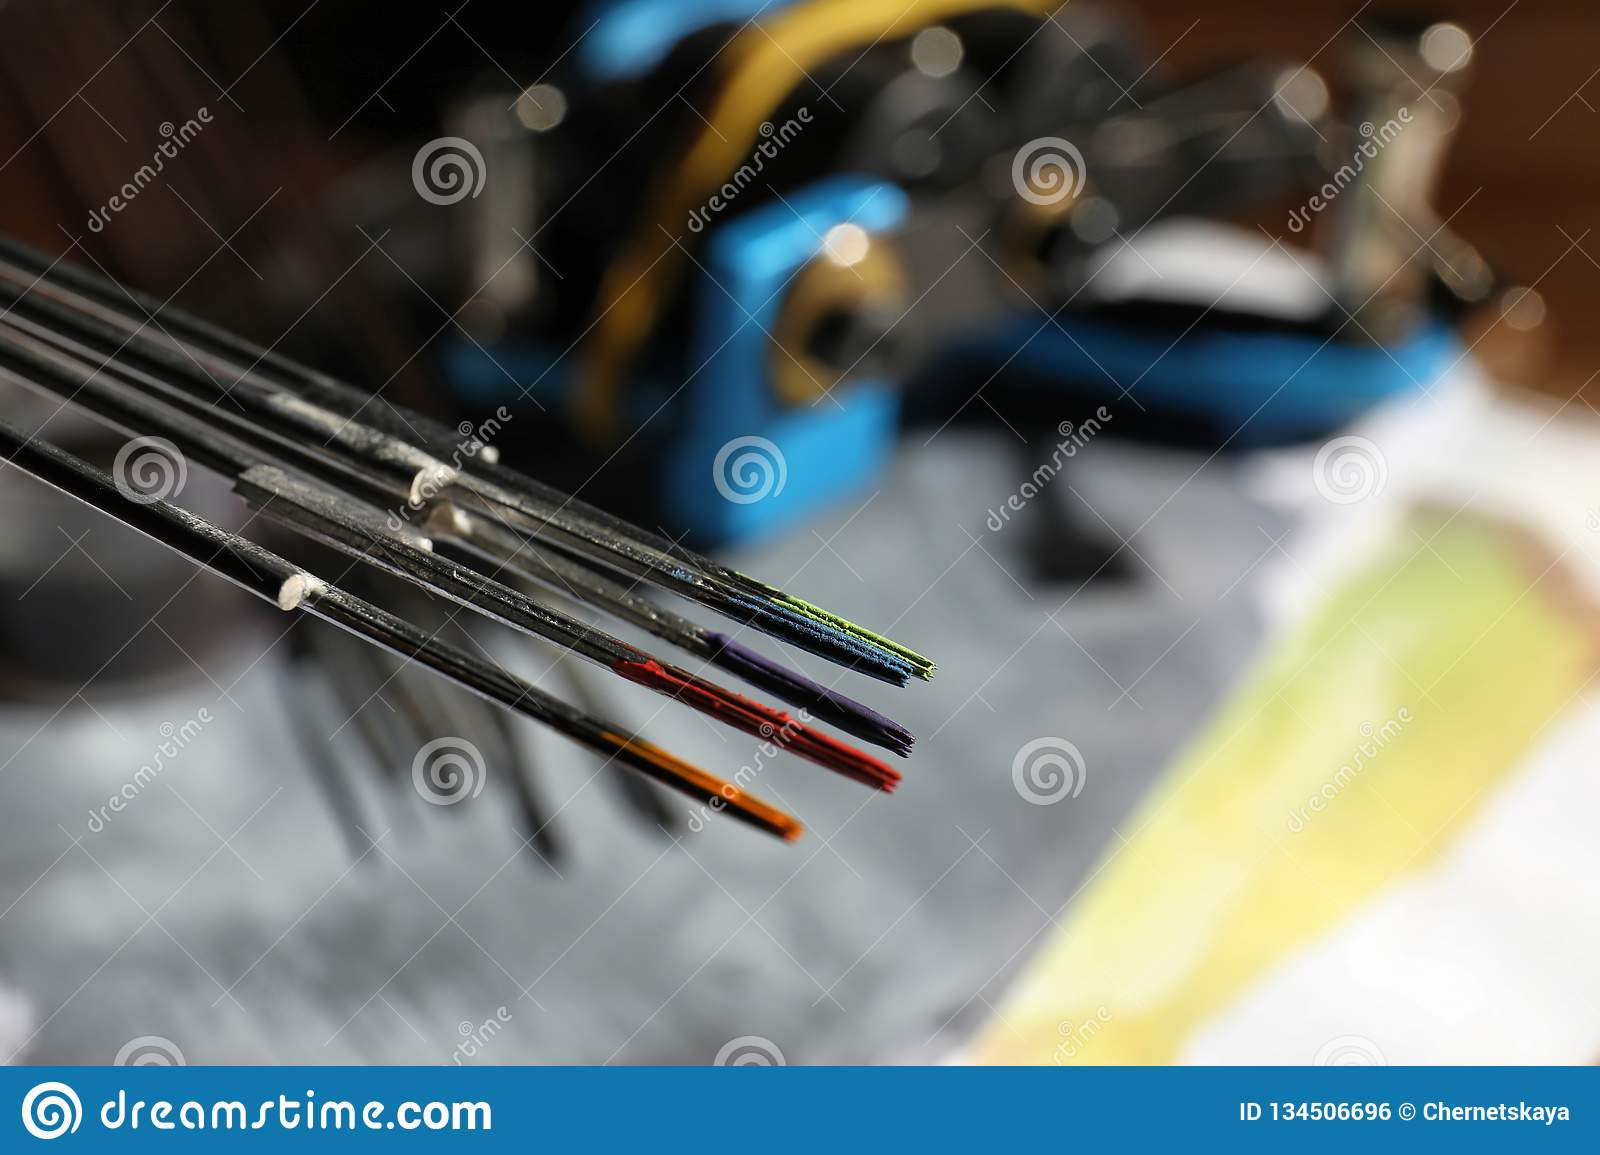 Tattoo Needles With Ink On Blurred Background Stock Photo - Image of ...